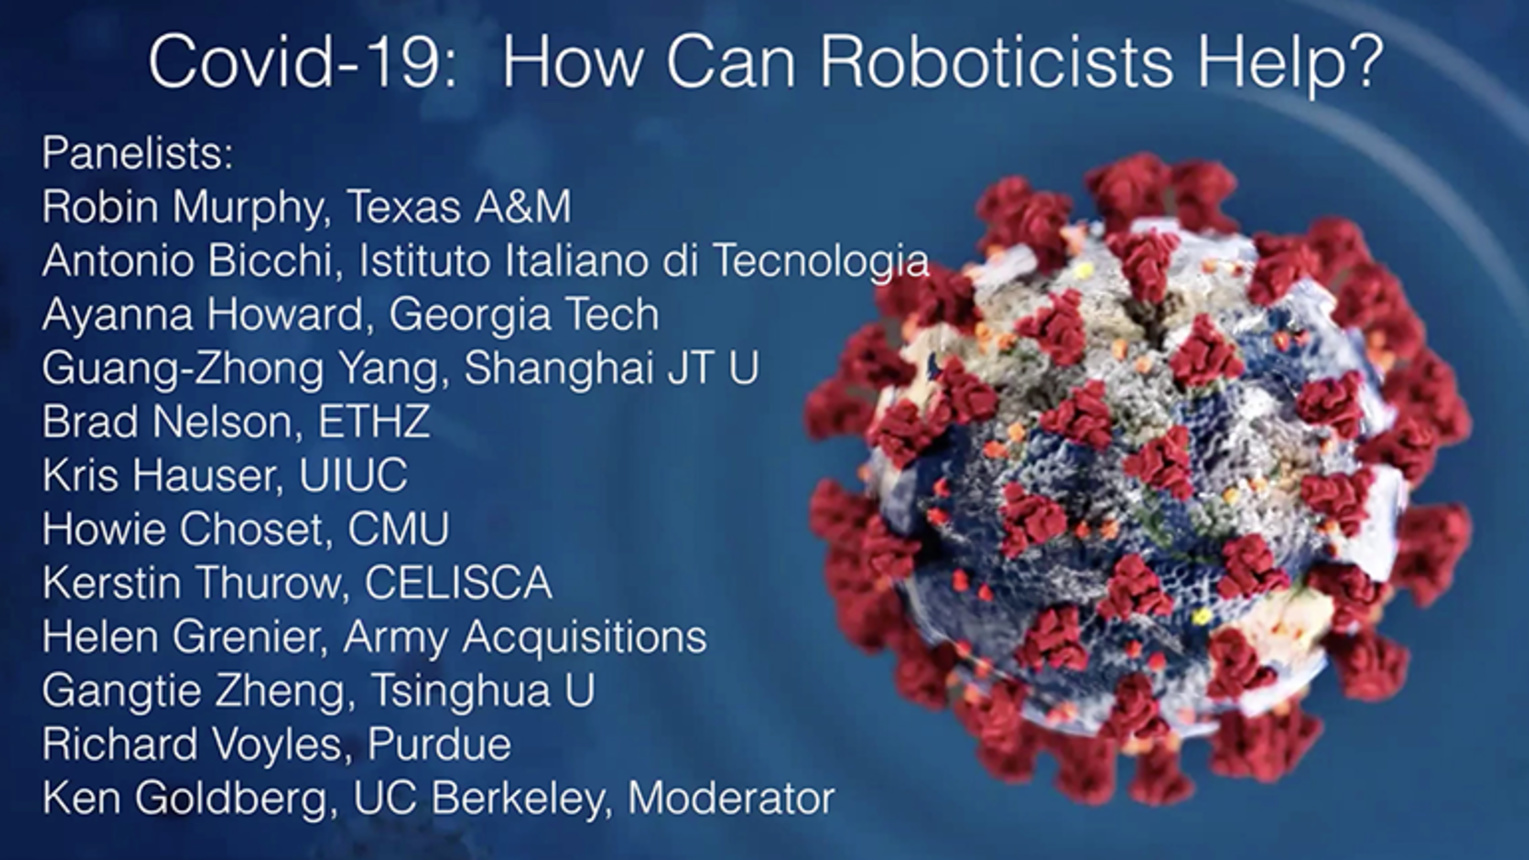 Covid-19: How Can Roboticists Help? - ICRA 2020